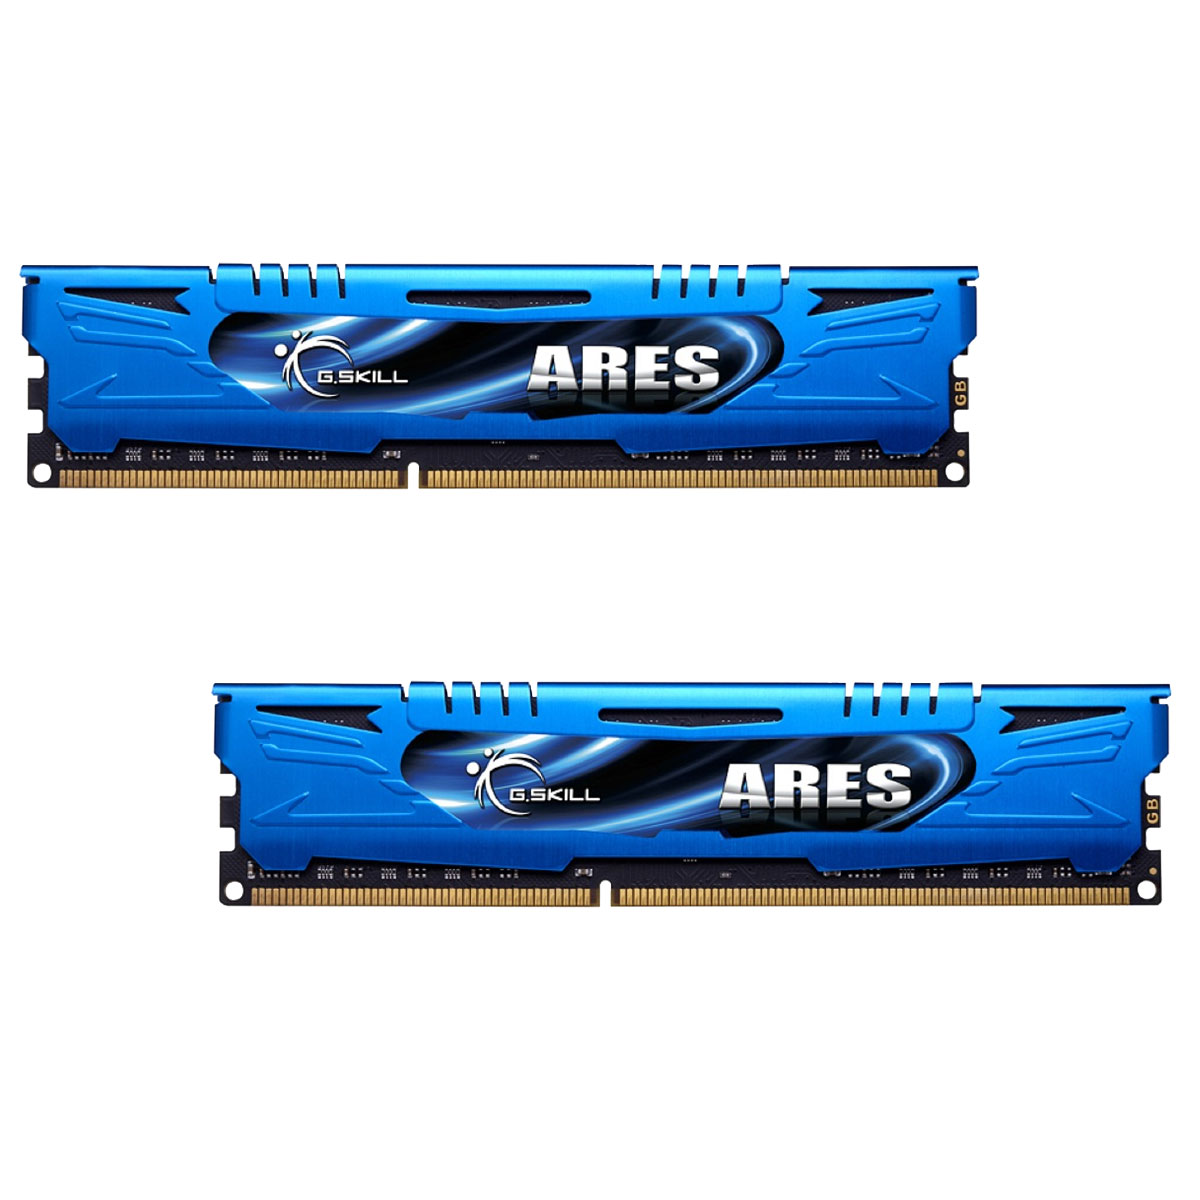 Mémoire PC G.Skill Ares Blue Series 8 Go (2 x 4 Go) DDR3 1600 MHz CL8 Kit Dual Channel DDR3 PC3-12800 - F3-1600C8D-8GAB (garantie à vie par G.Skill)